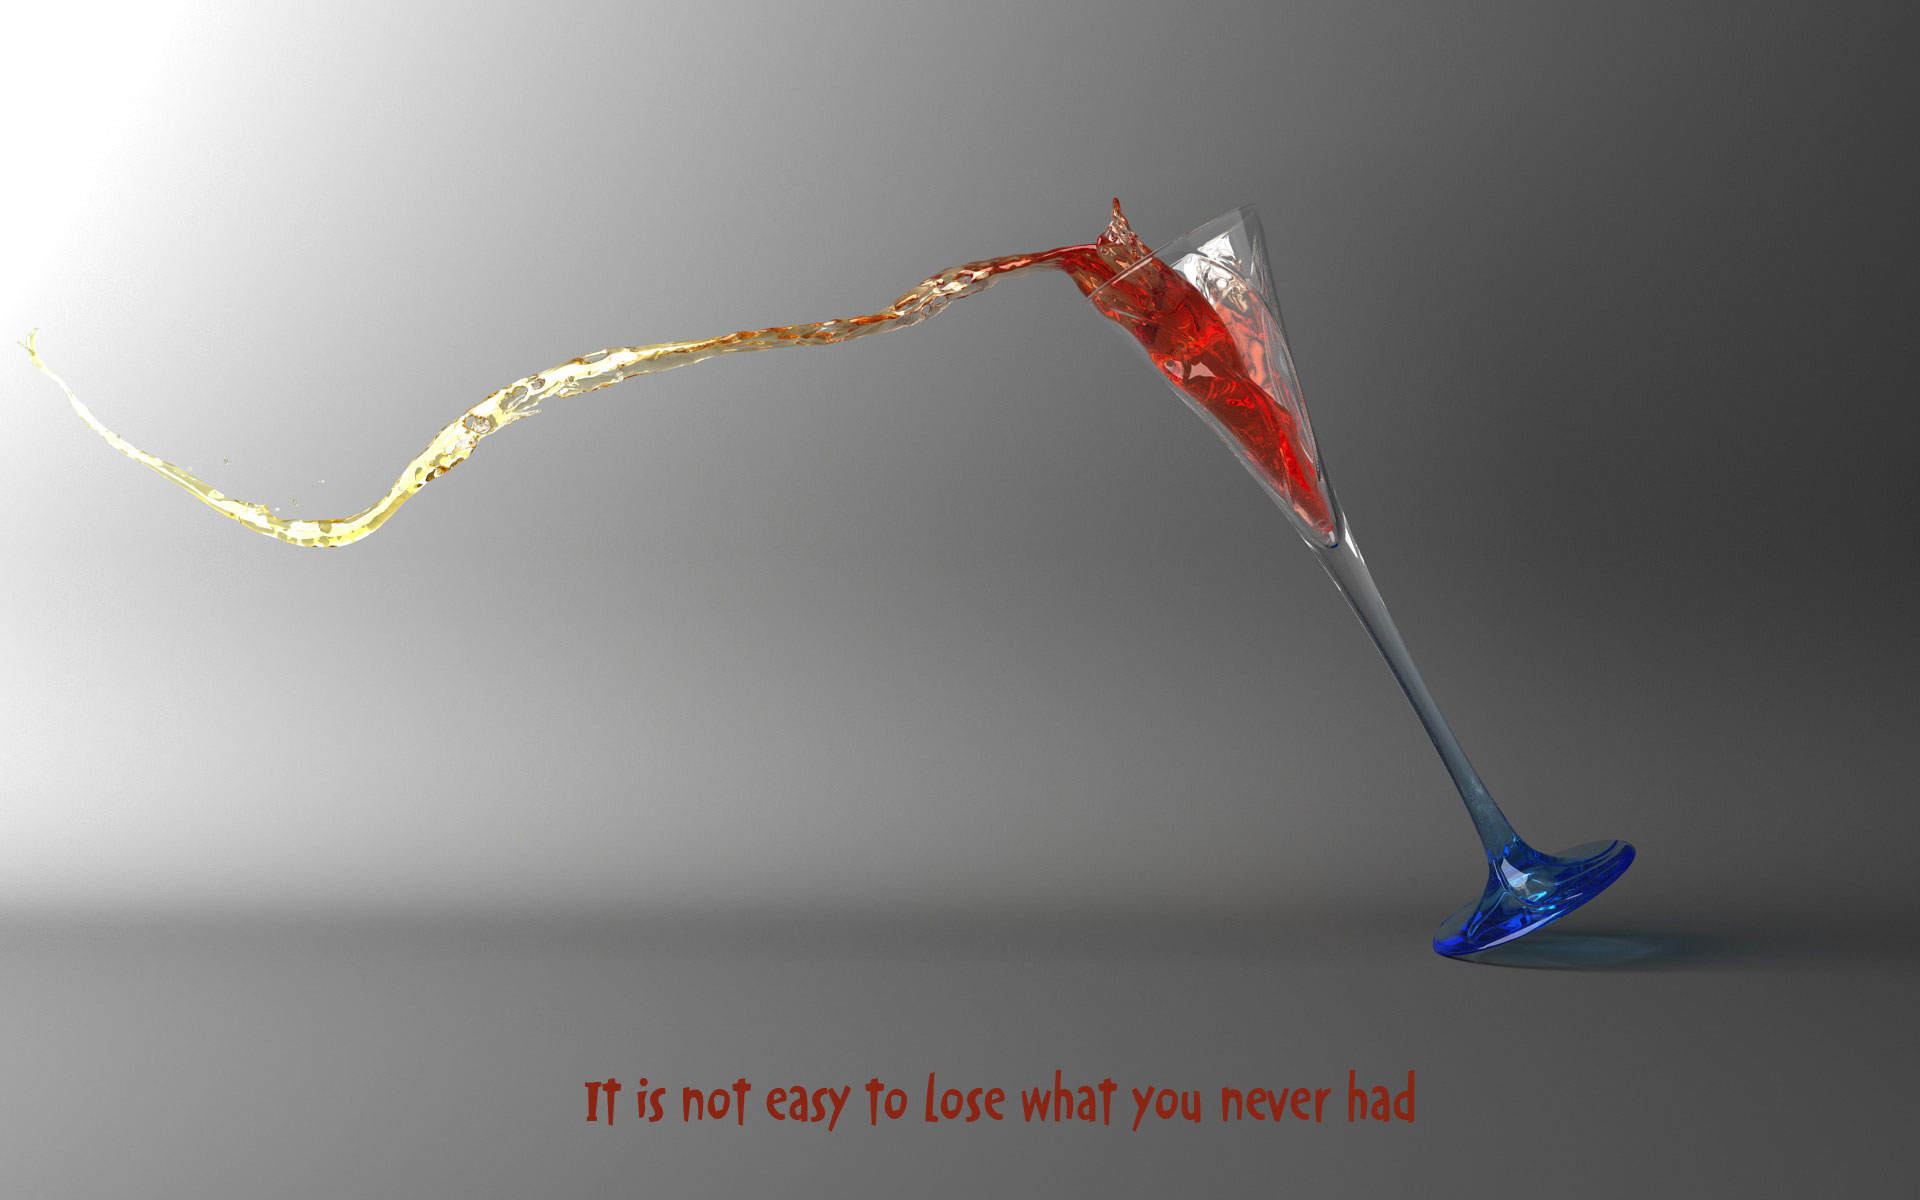 It is not easy to lose what you never had